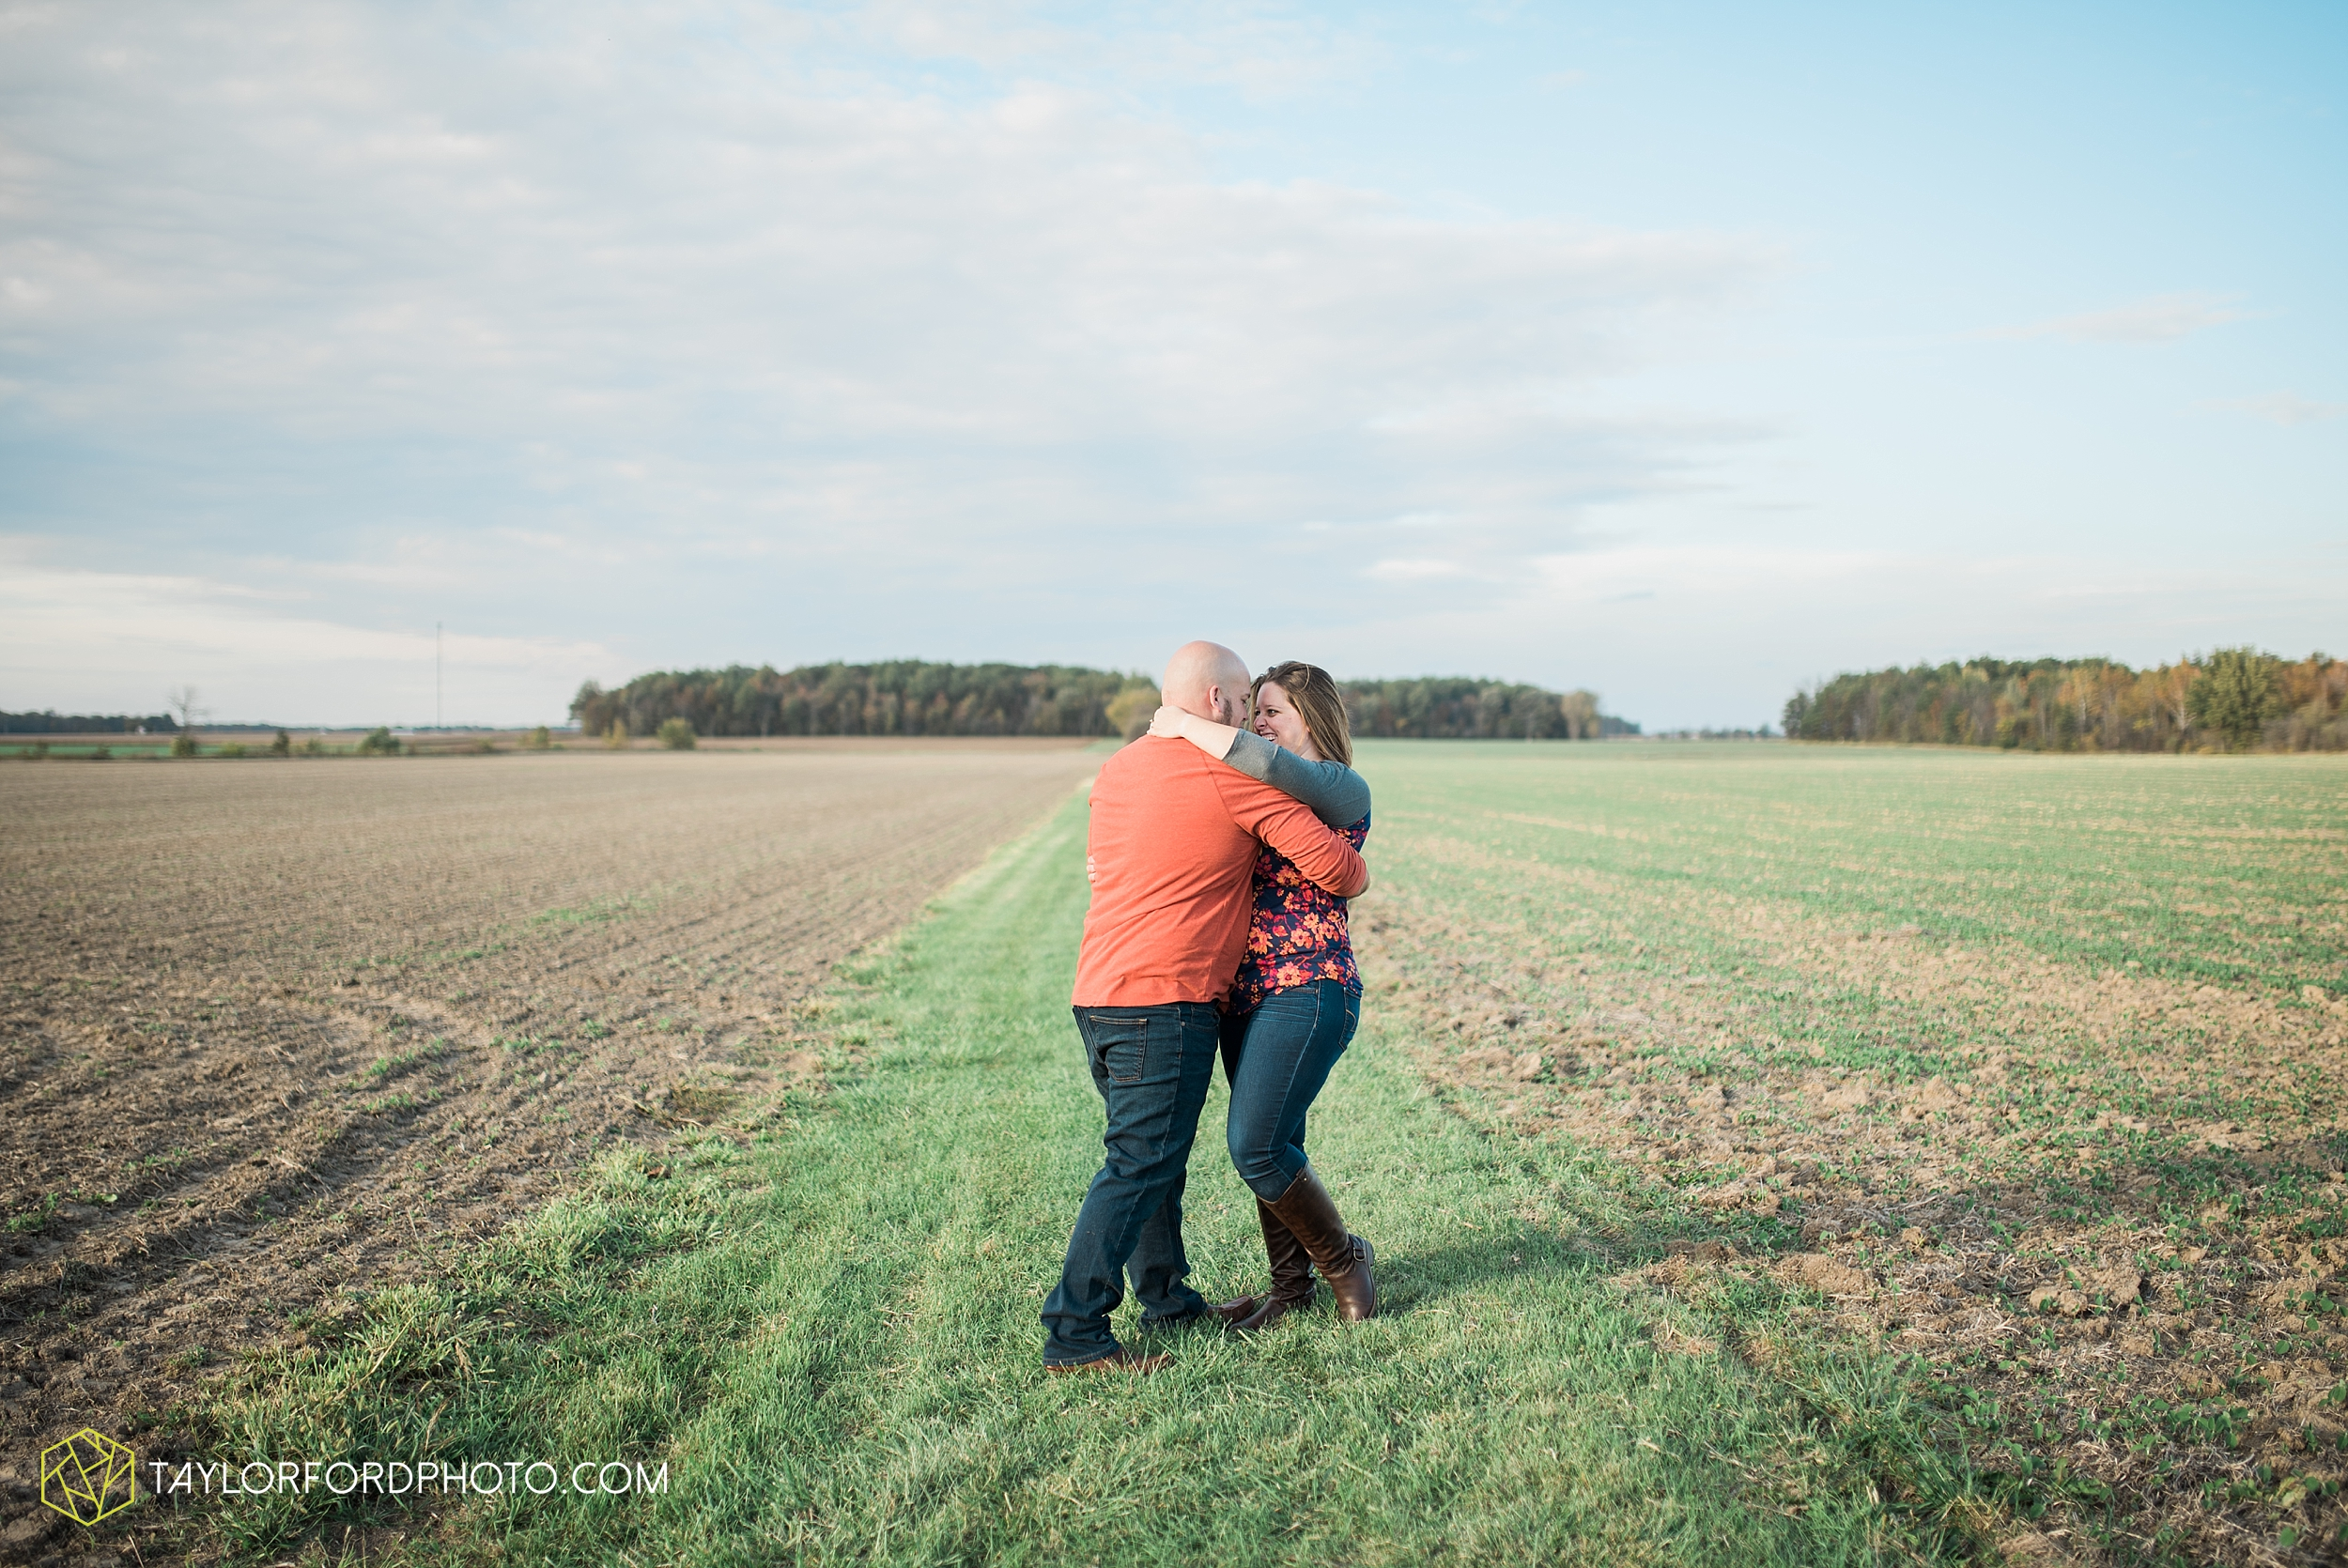 van-wert-ohio-engagement-wedding-photographer-Taylor-Ford-Photography-fall-farm-nature_4148.jpg